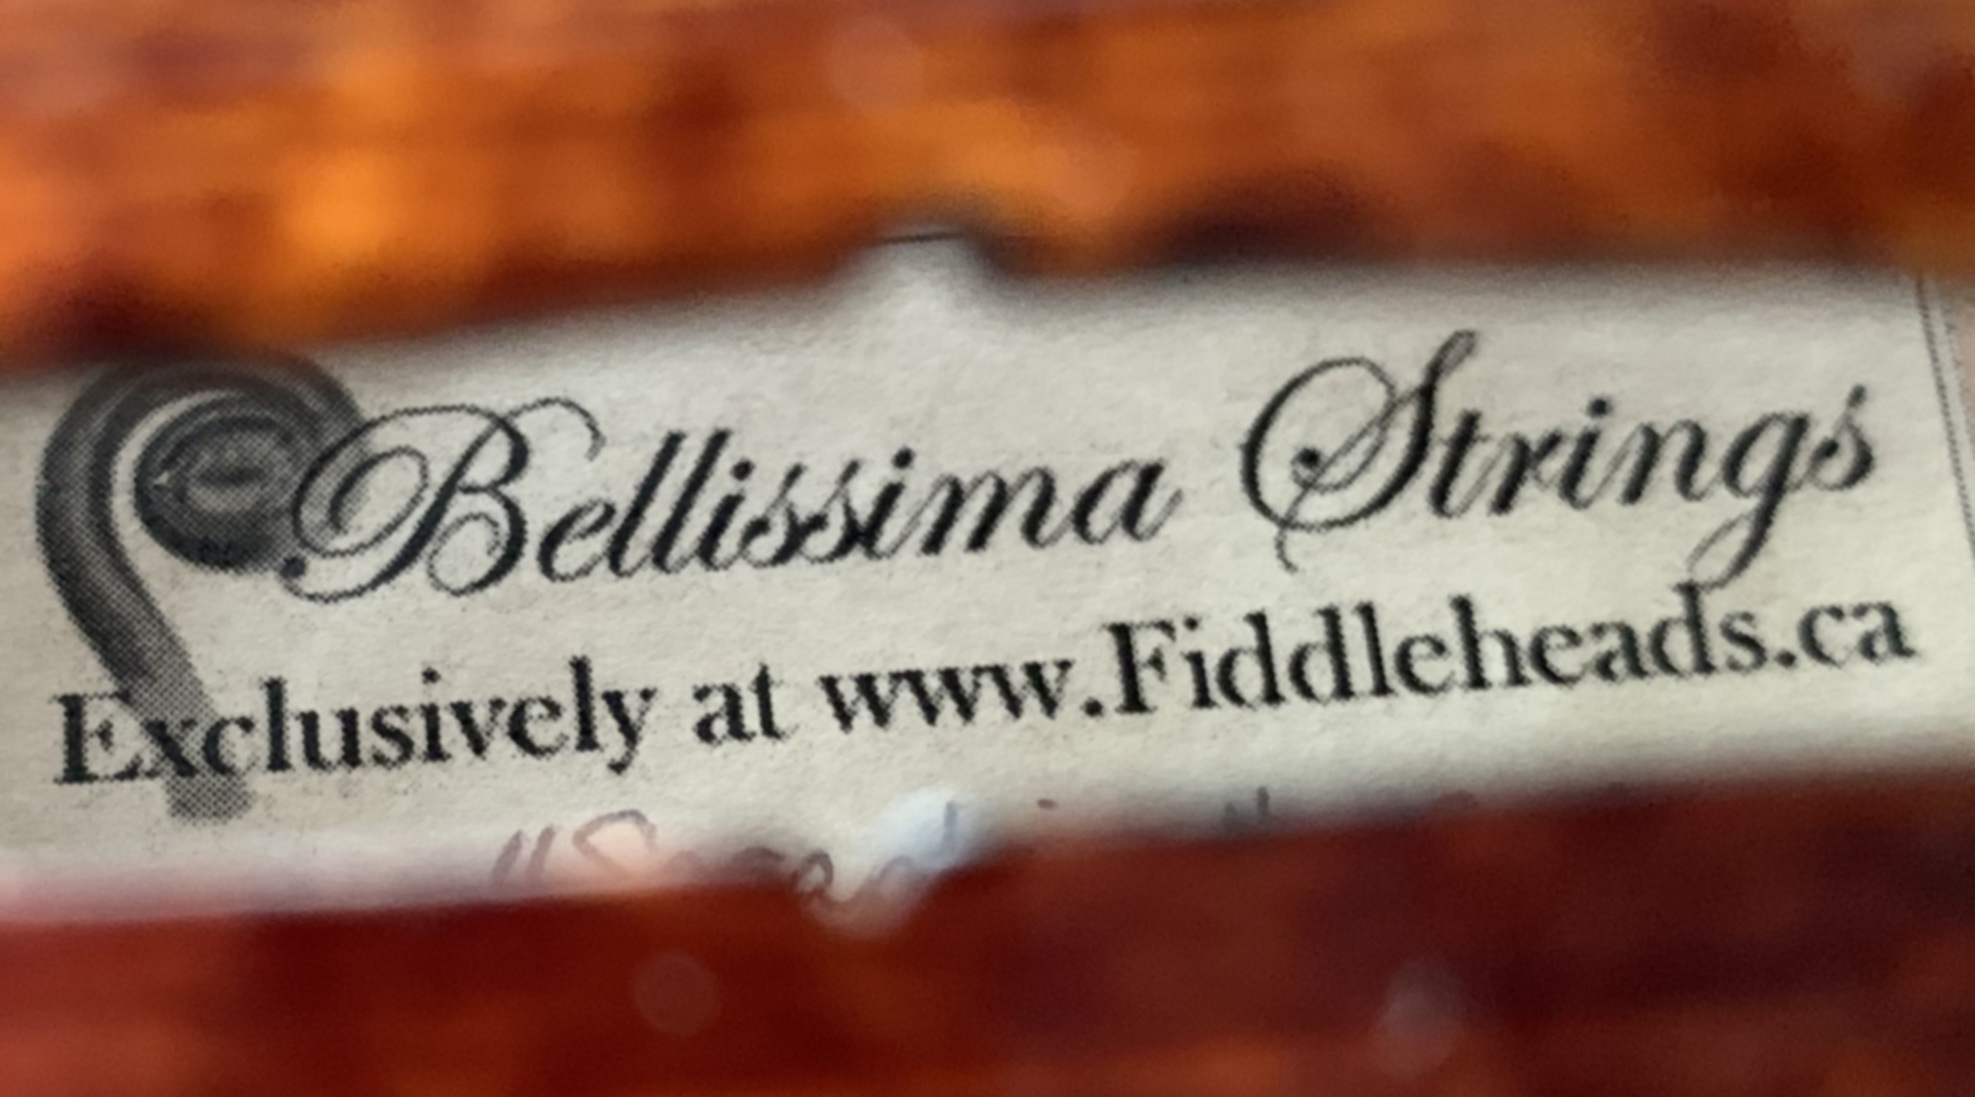 Bellissima - Fiddleheads Exclusive